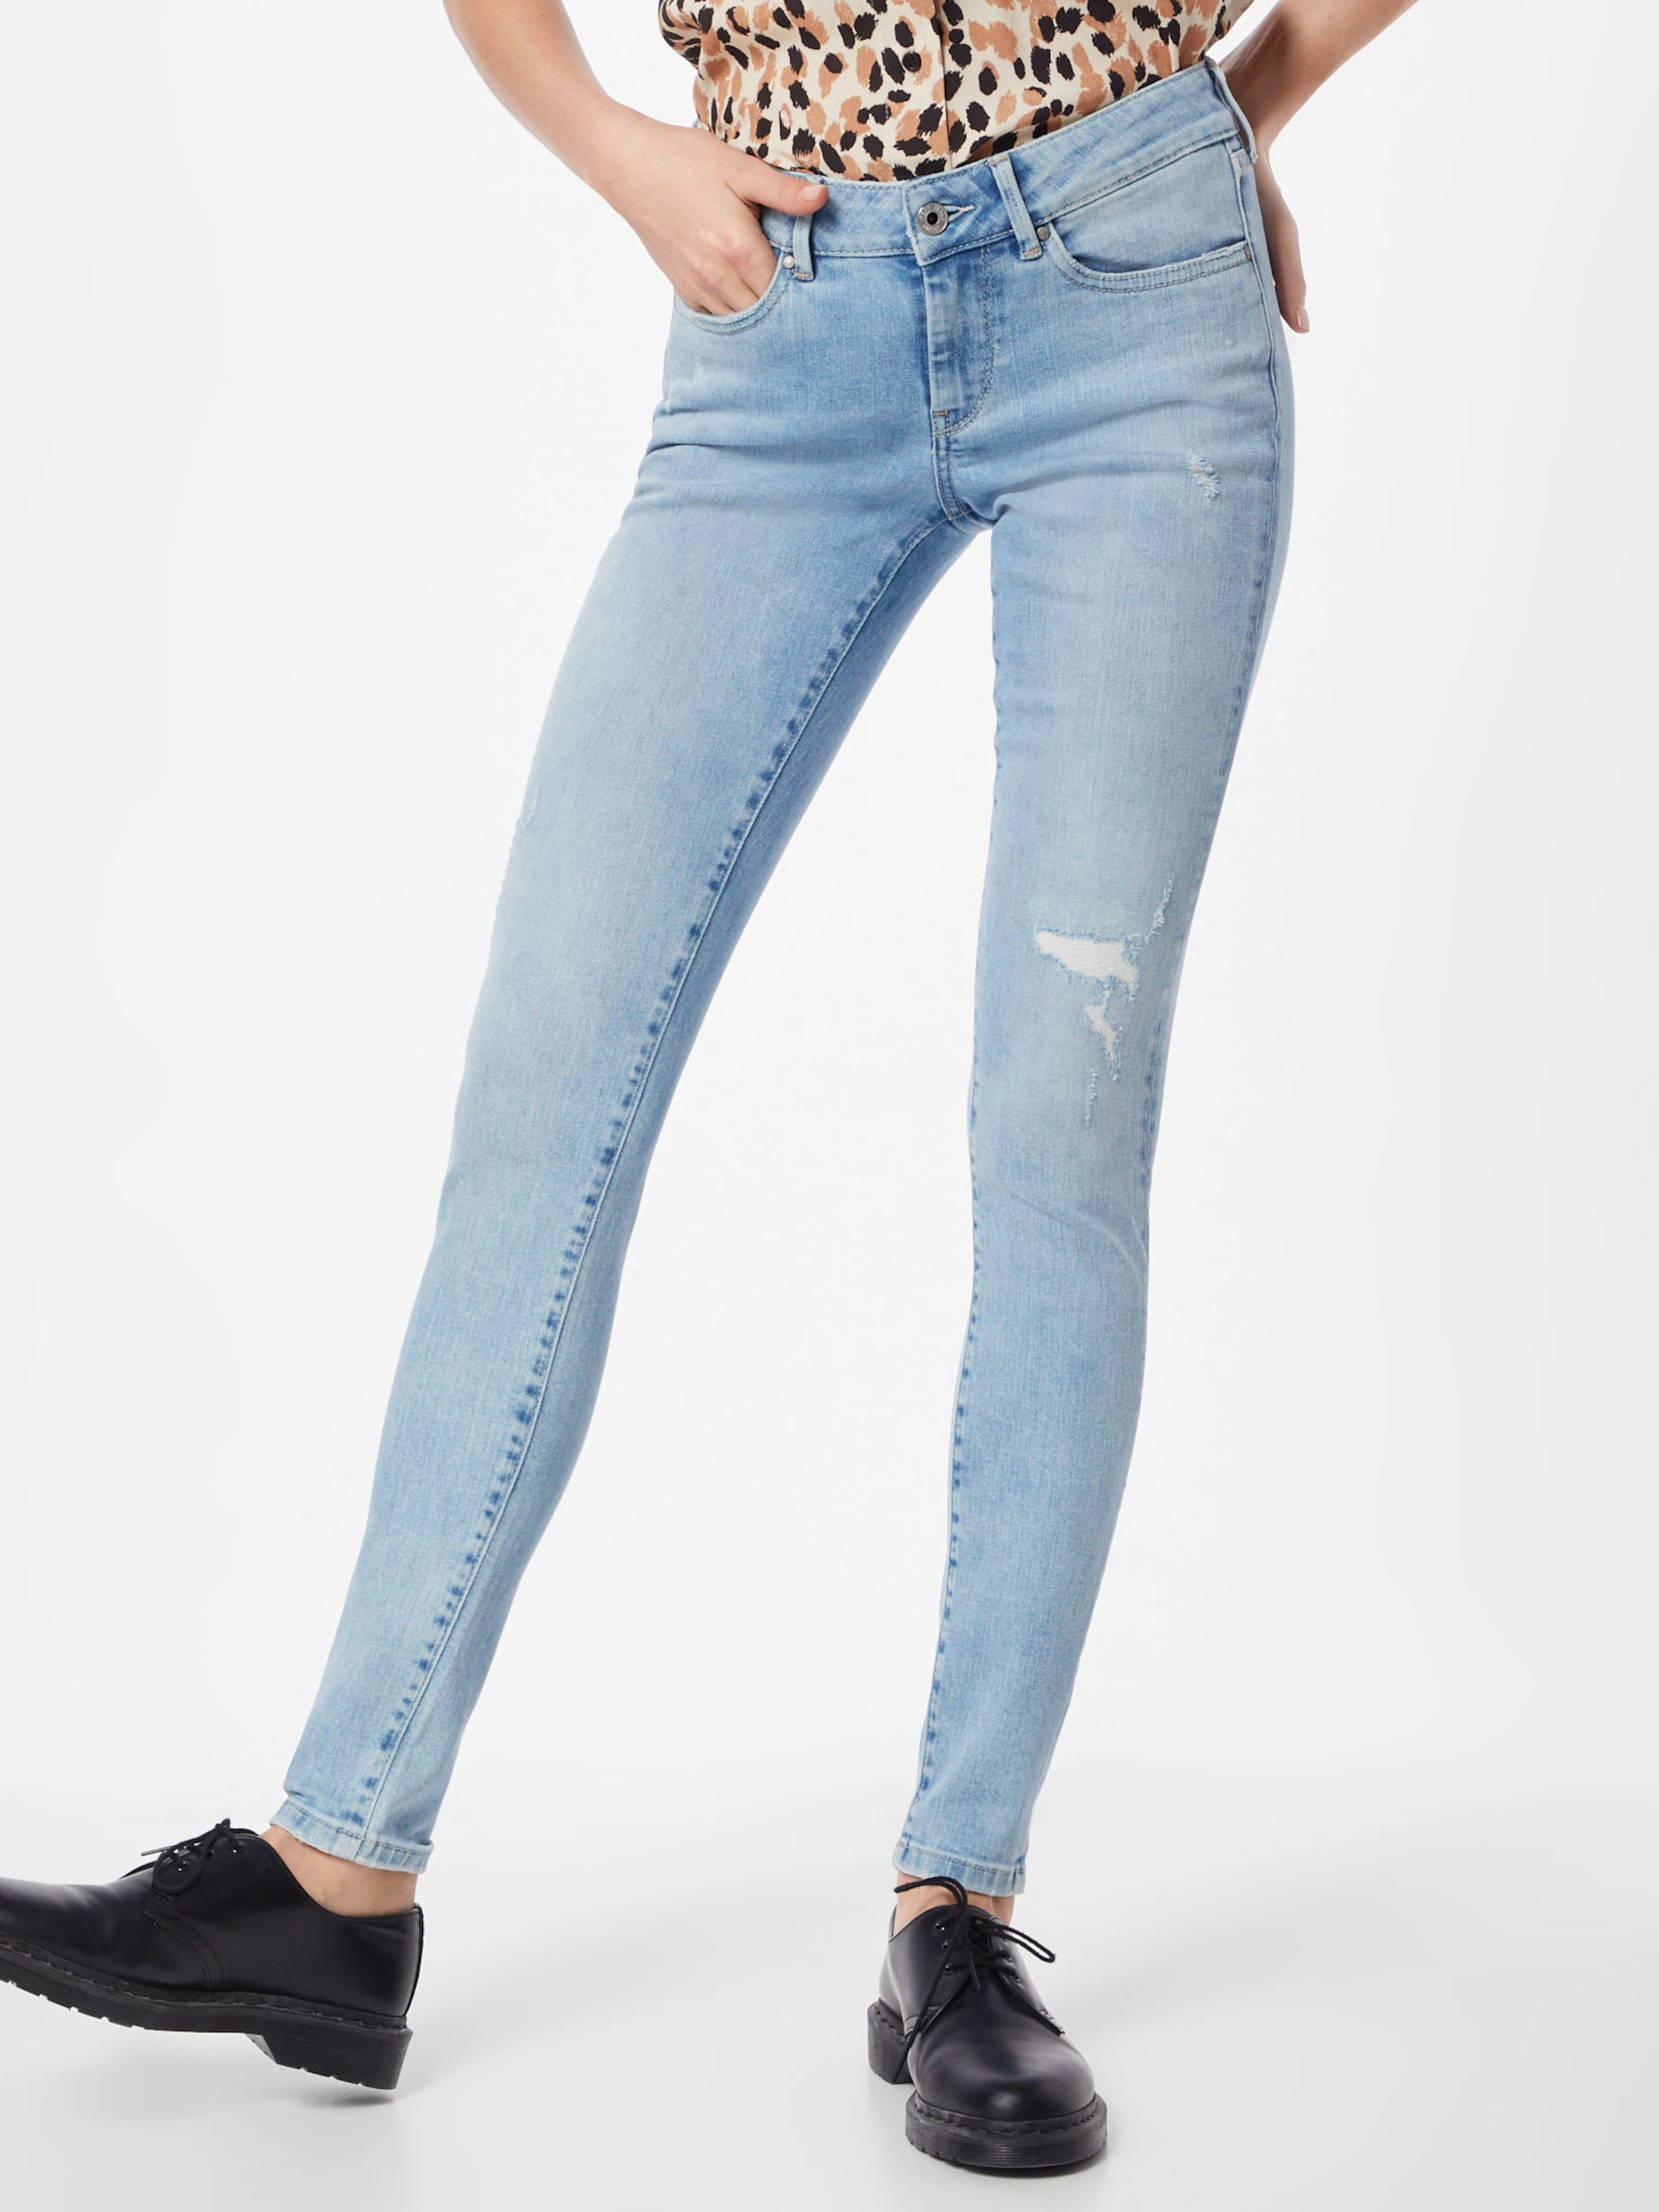 'pixie' 'pixie' In Jeans Pepe Jeans Hellblau In Pepe f7YIby6gv